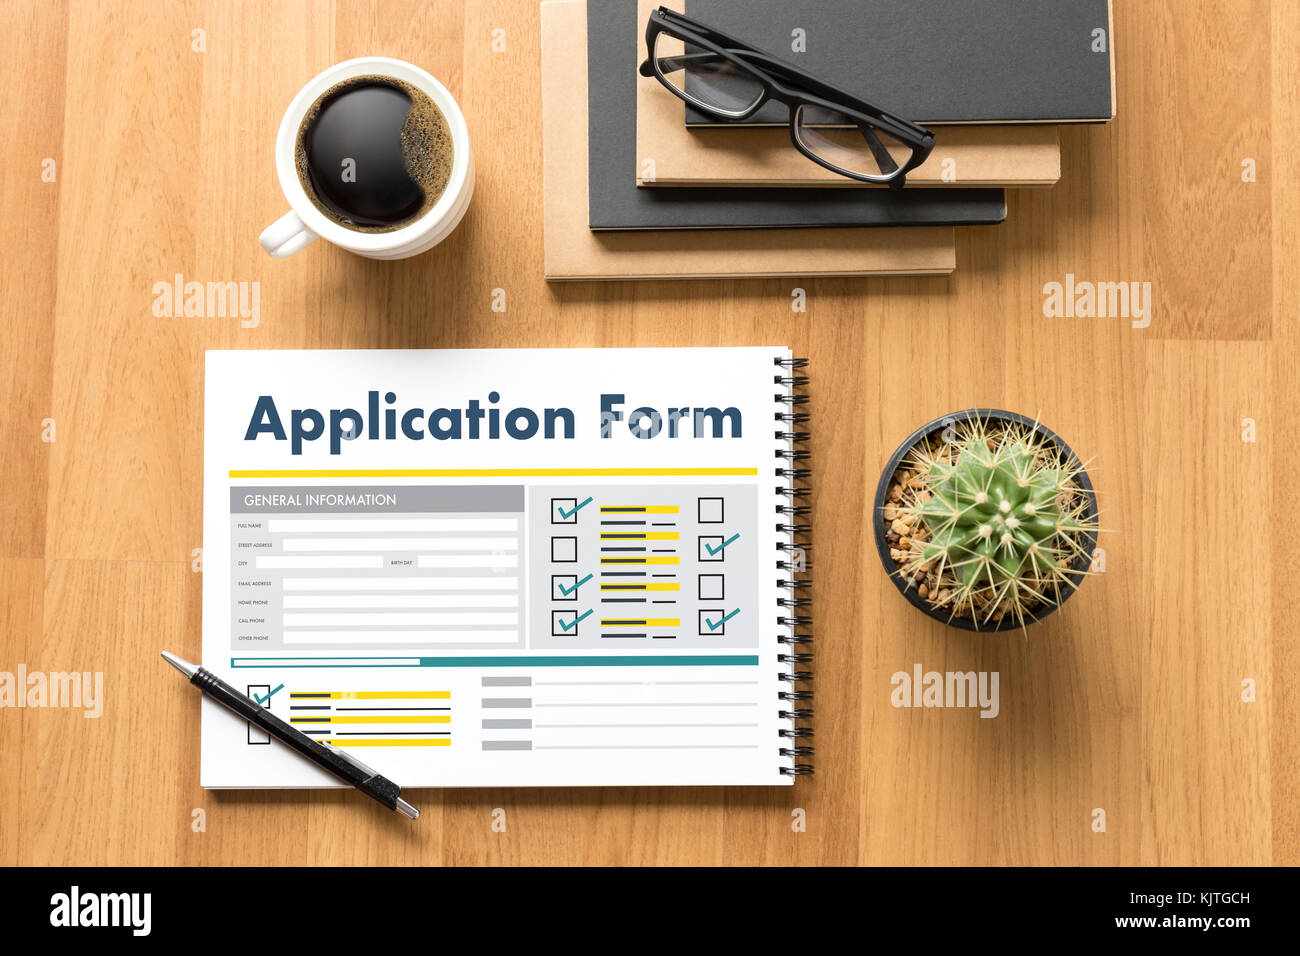 computer application for business accounts